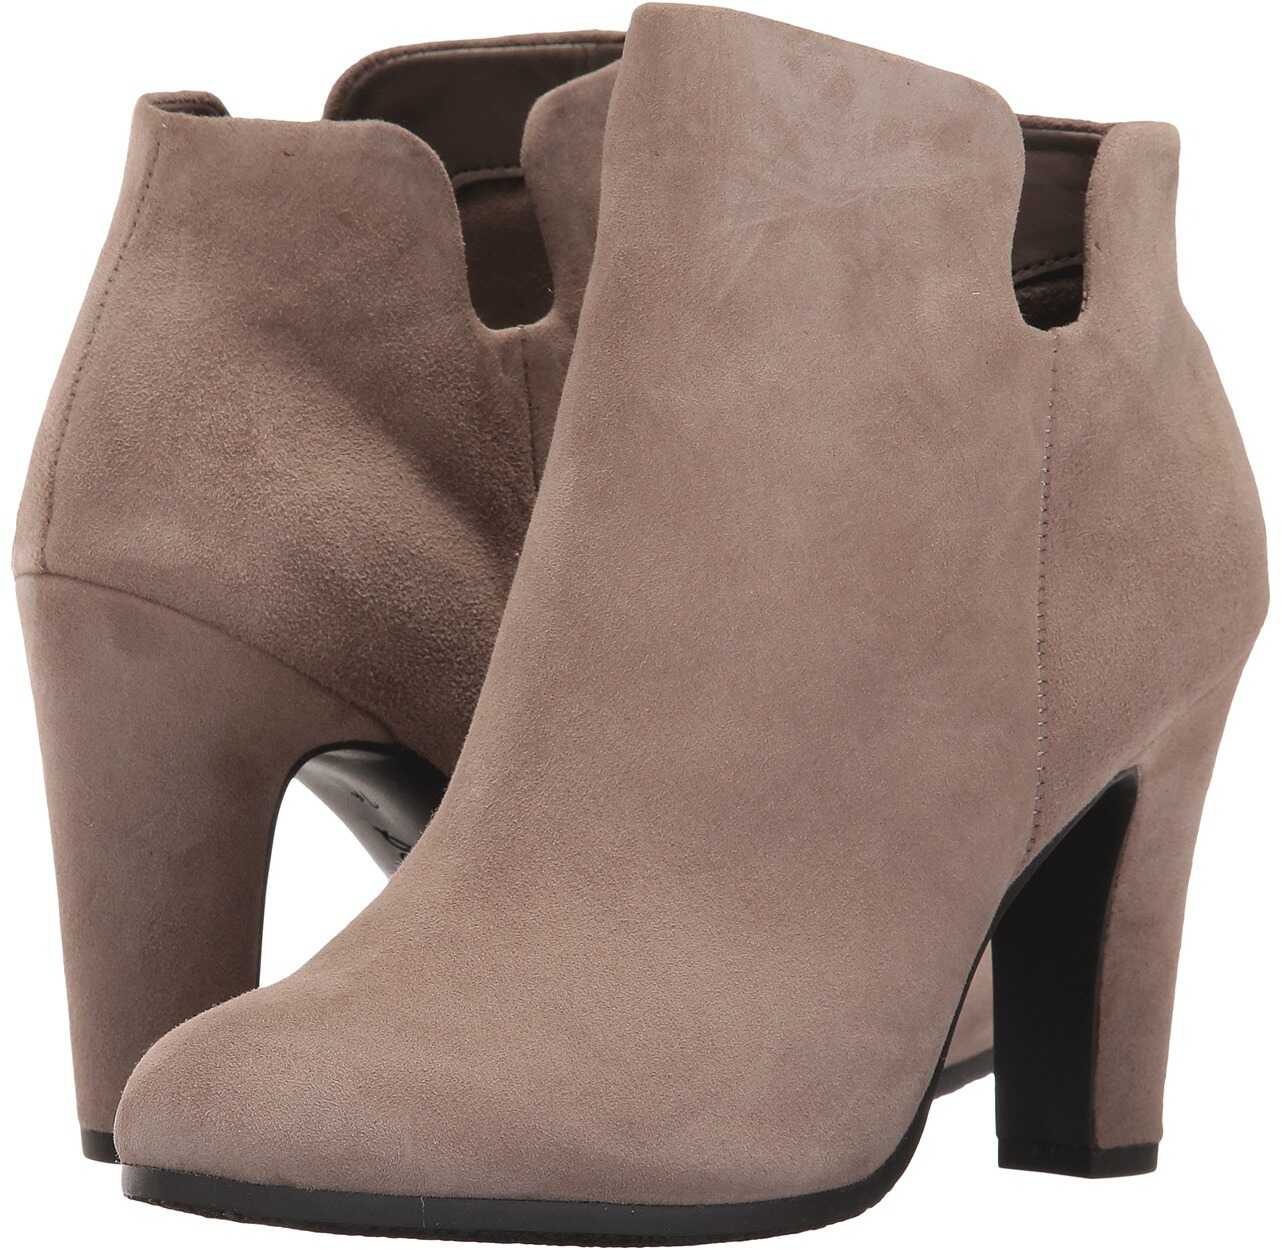 Sam Edelman Shelby Putty Kid Suede Leather